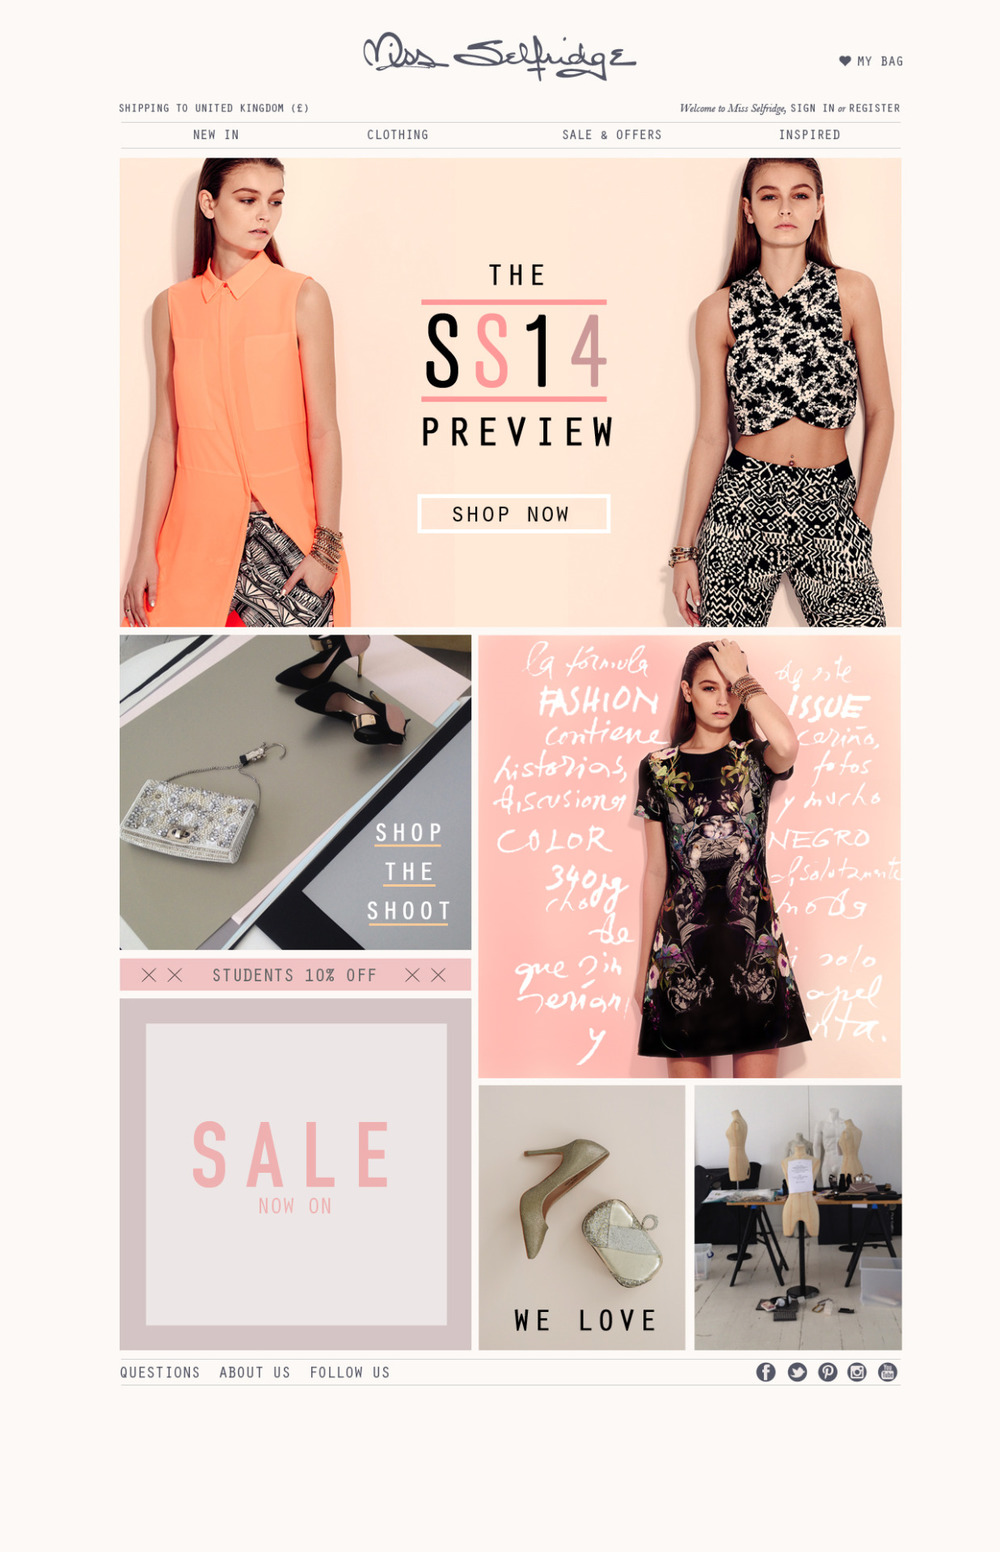 Miss_Selfridge_New Web_design_1.jpg